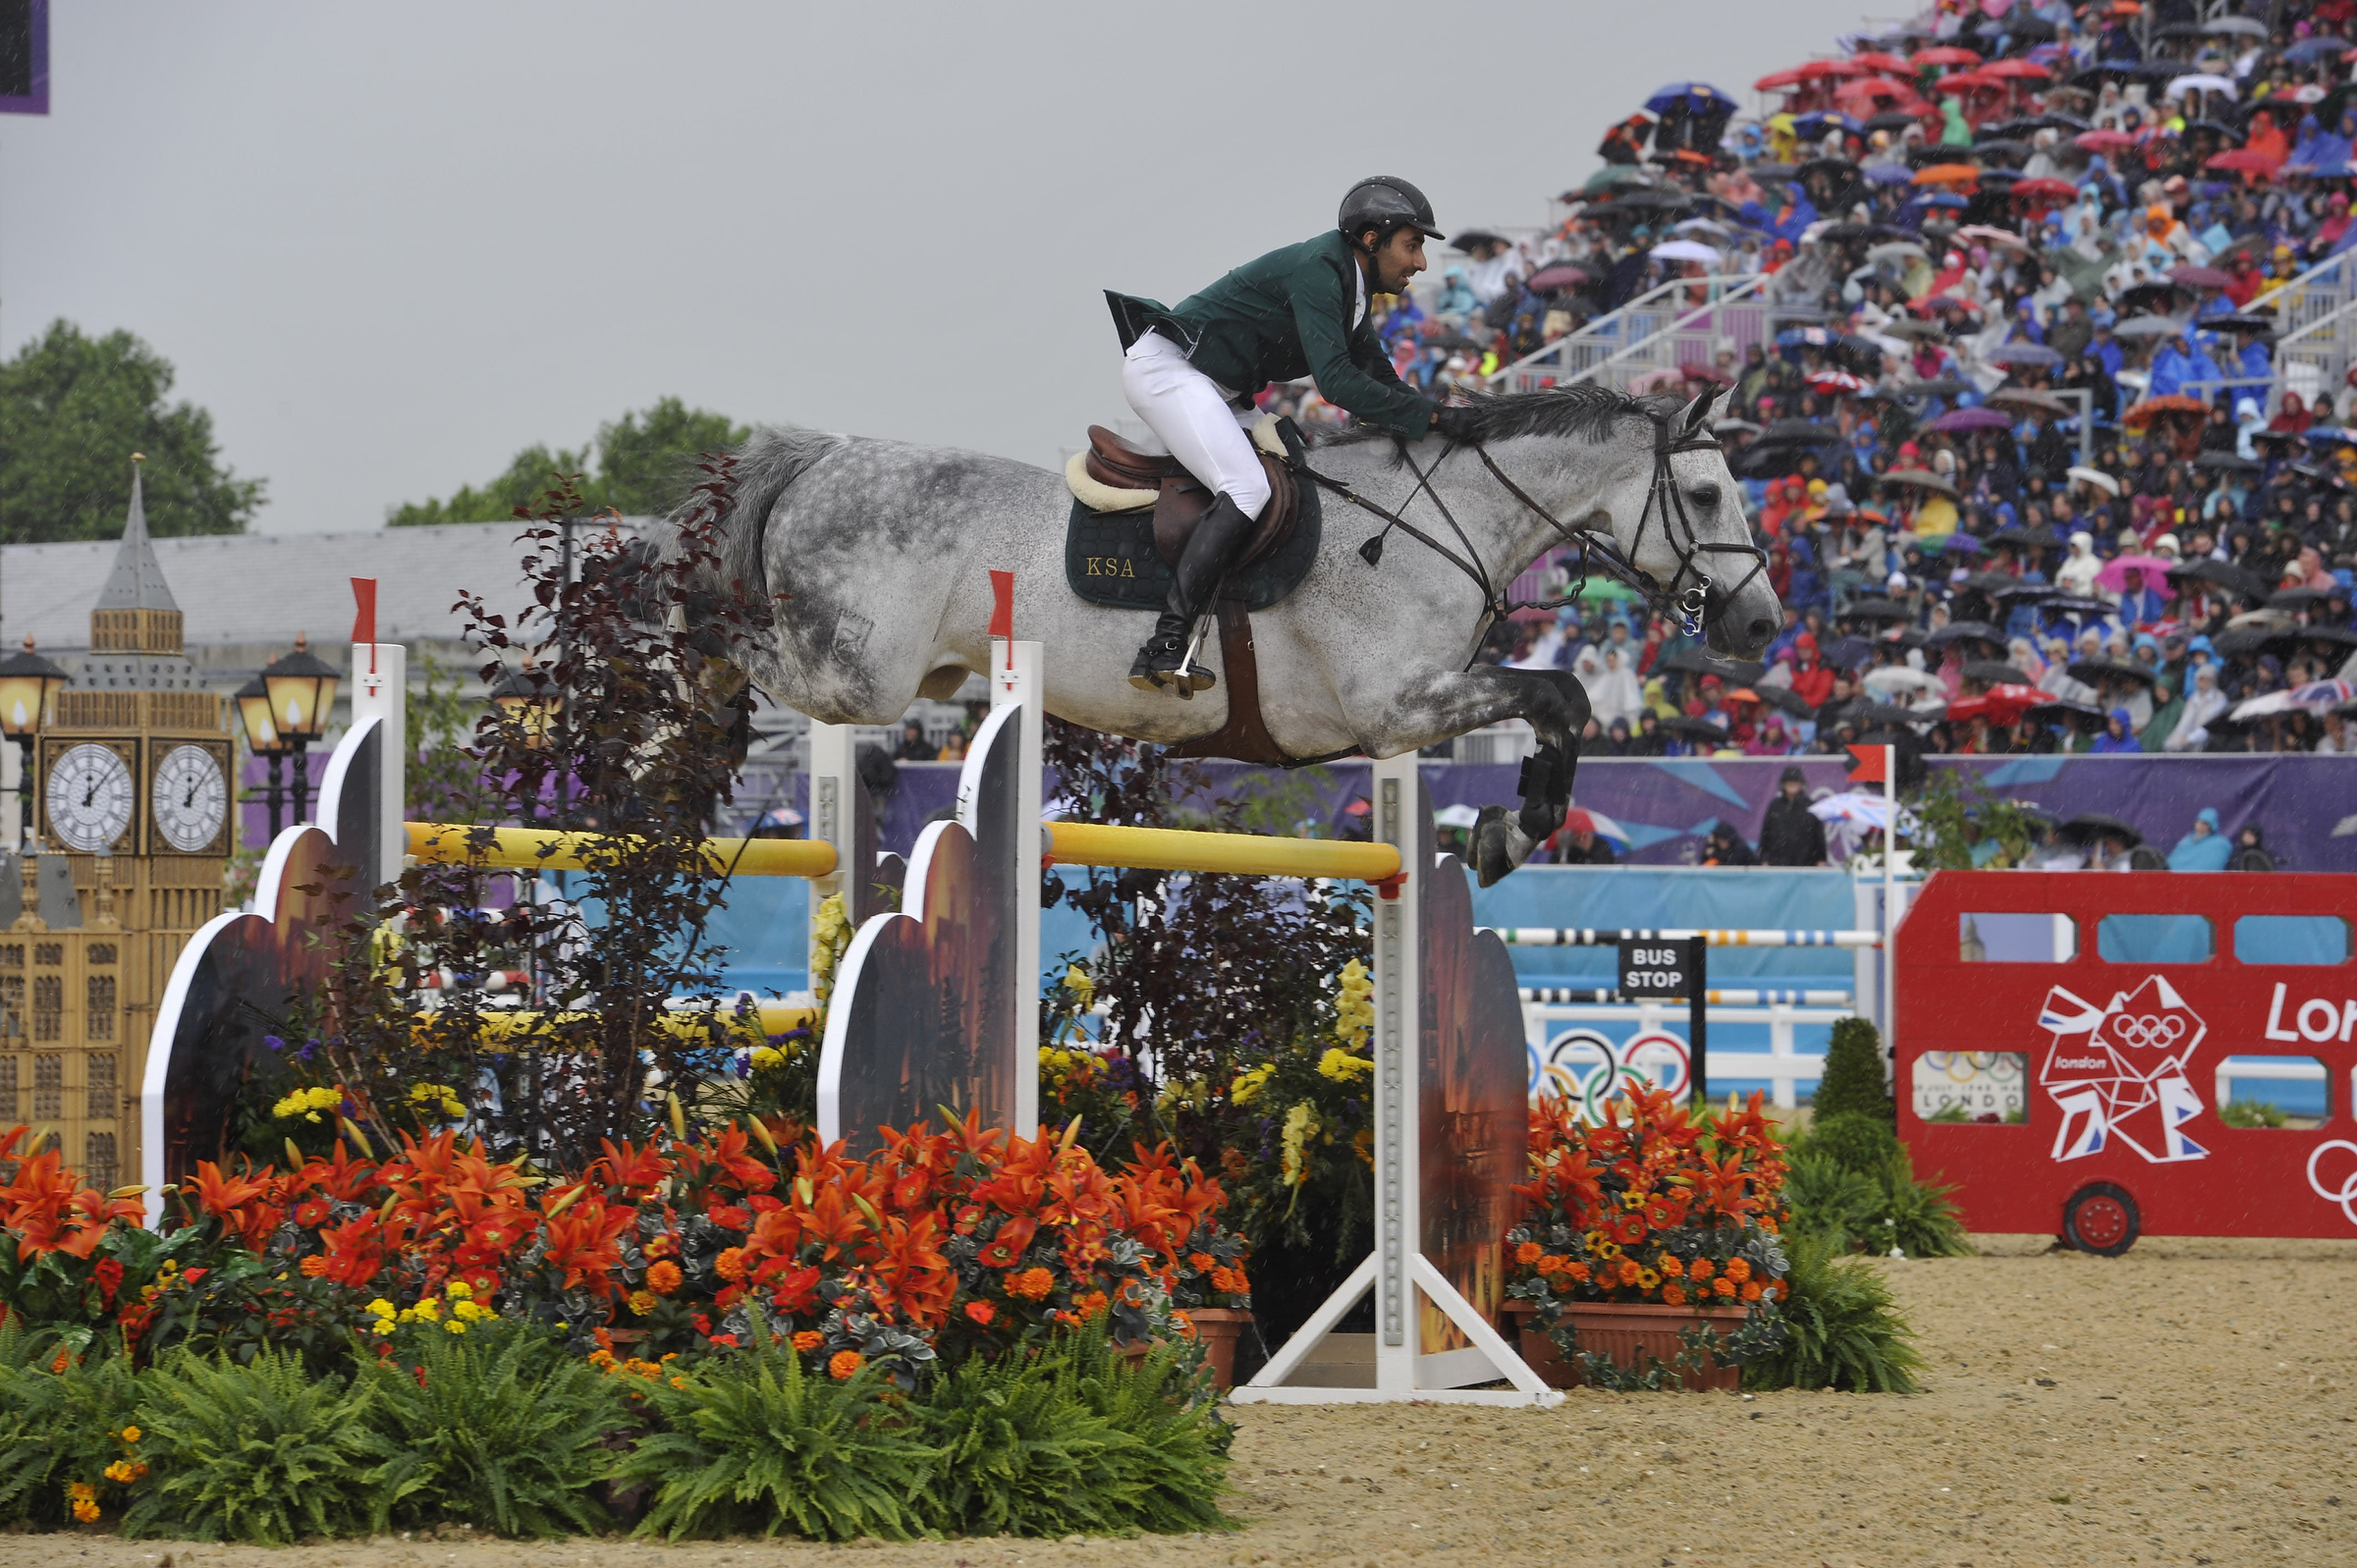 Horse Times Egypt: Equestrian Magazine :News :SAUDI ARABIA LEADS THE TEAM COMPETITION AFTER DAY 2 - LONDON 2012 OLYMPIC SHOW JUMPING